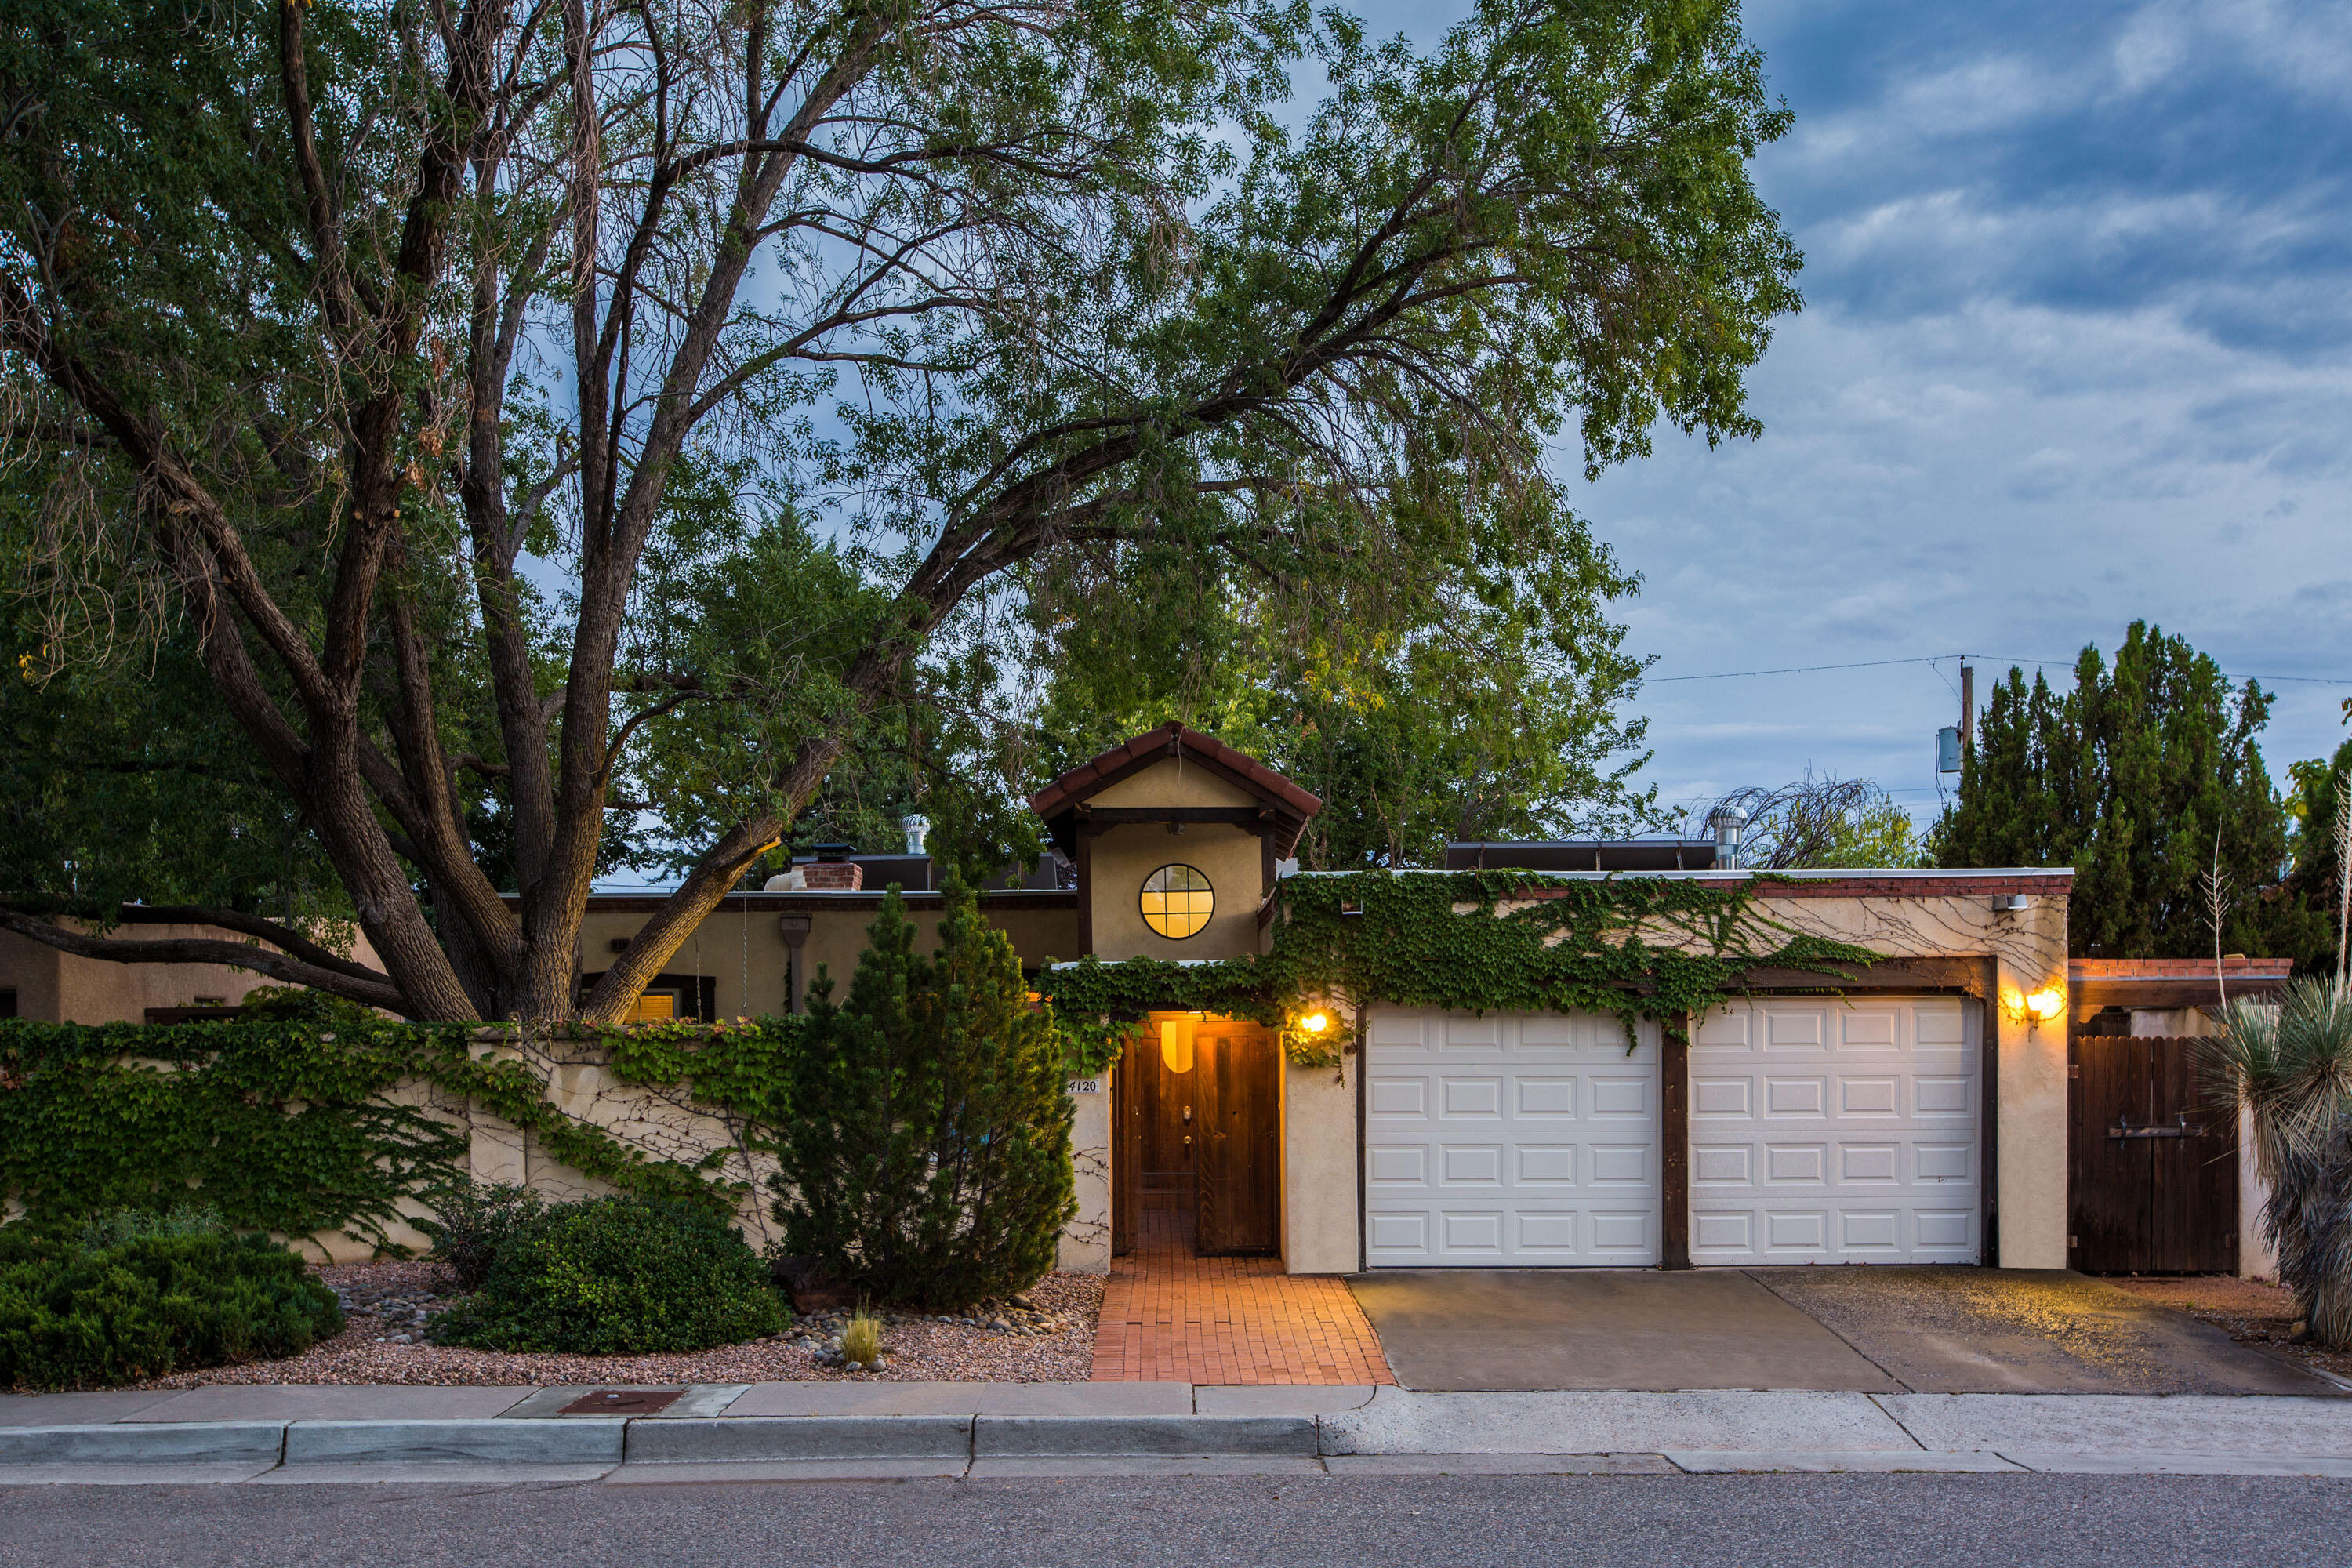 This quaint mission-style home is located in a quiet neighborhood with mature trees and walkable/bikeable streets near schools, parks, entertainment, dining, and shopping. The property is only minutes away from the experience of Nob Hill, the university, hospitals, transit, and freeway access. The split bedroom floorplan has the primary bedroom suite separated from the other rooms. The spacious family room has an abundance of natural light, and is cozy enough for small gatherings yet big enough for larger receptions. There is plenty of privacy with a large front courtyard and walled backyard, and the lush verdant landscape provides the perfect setting for your oasis. With everything this home has to offer in charm and amenities life will undoubtedly be a sweeter here.